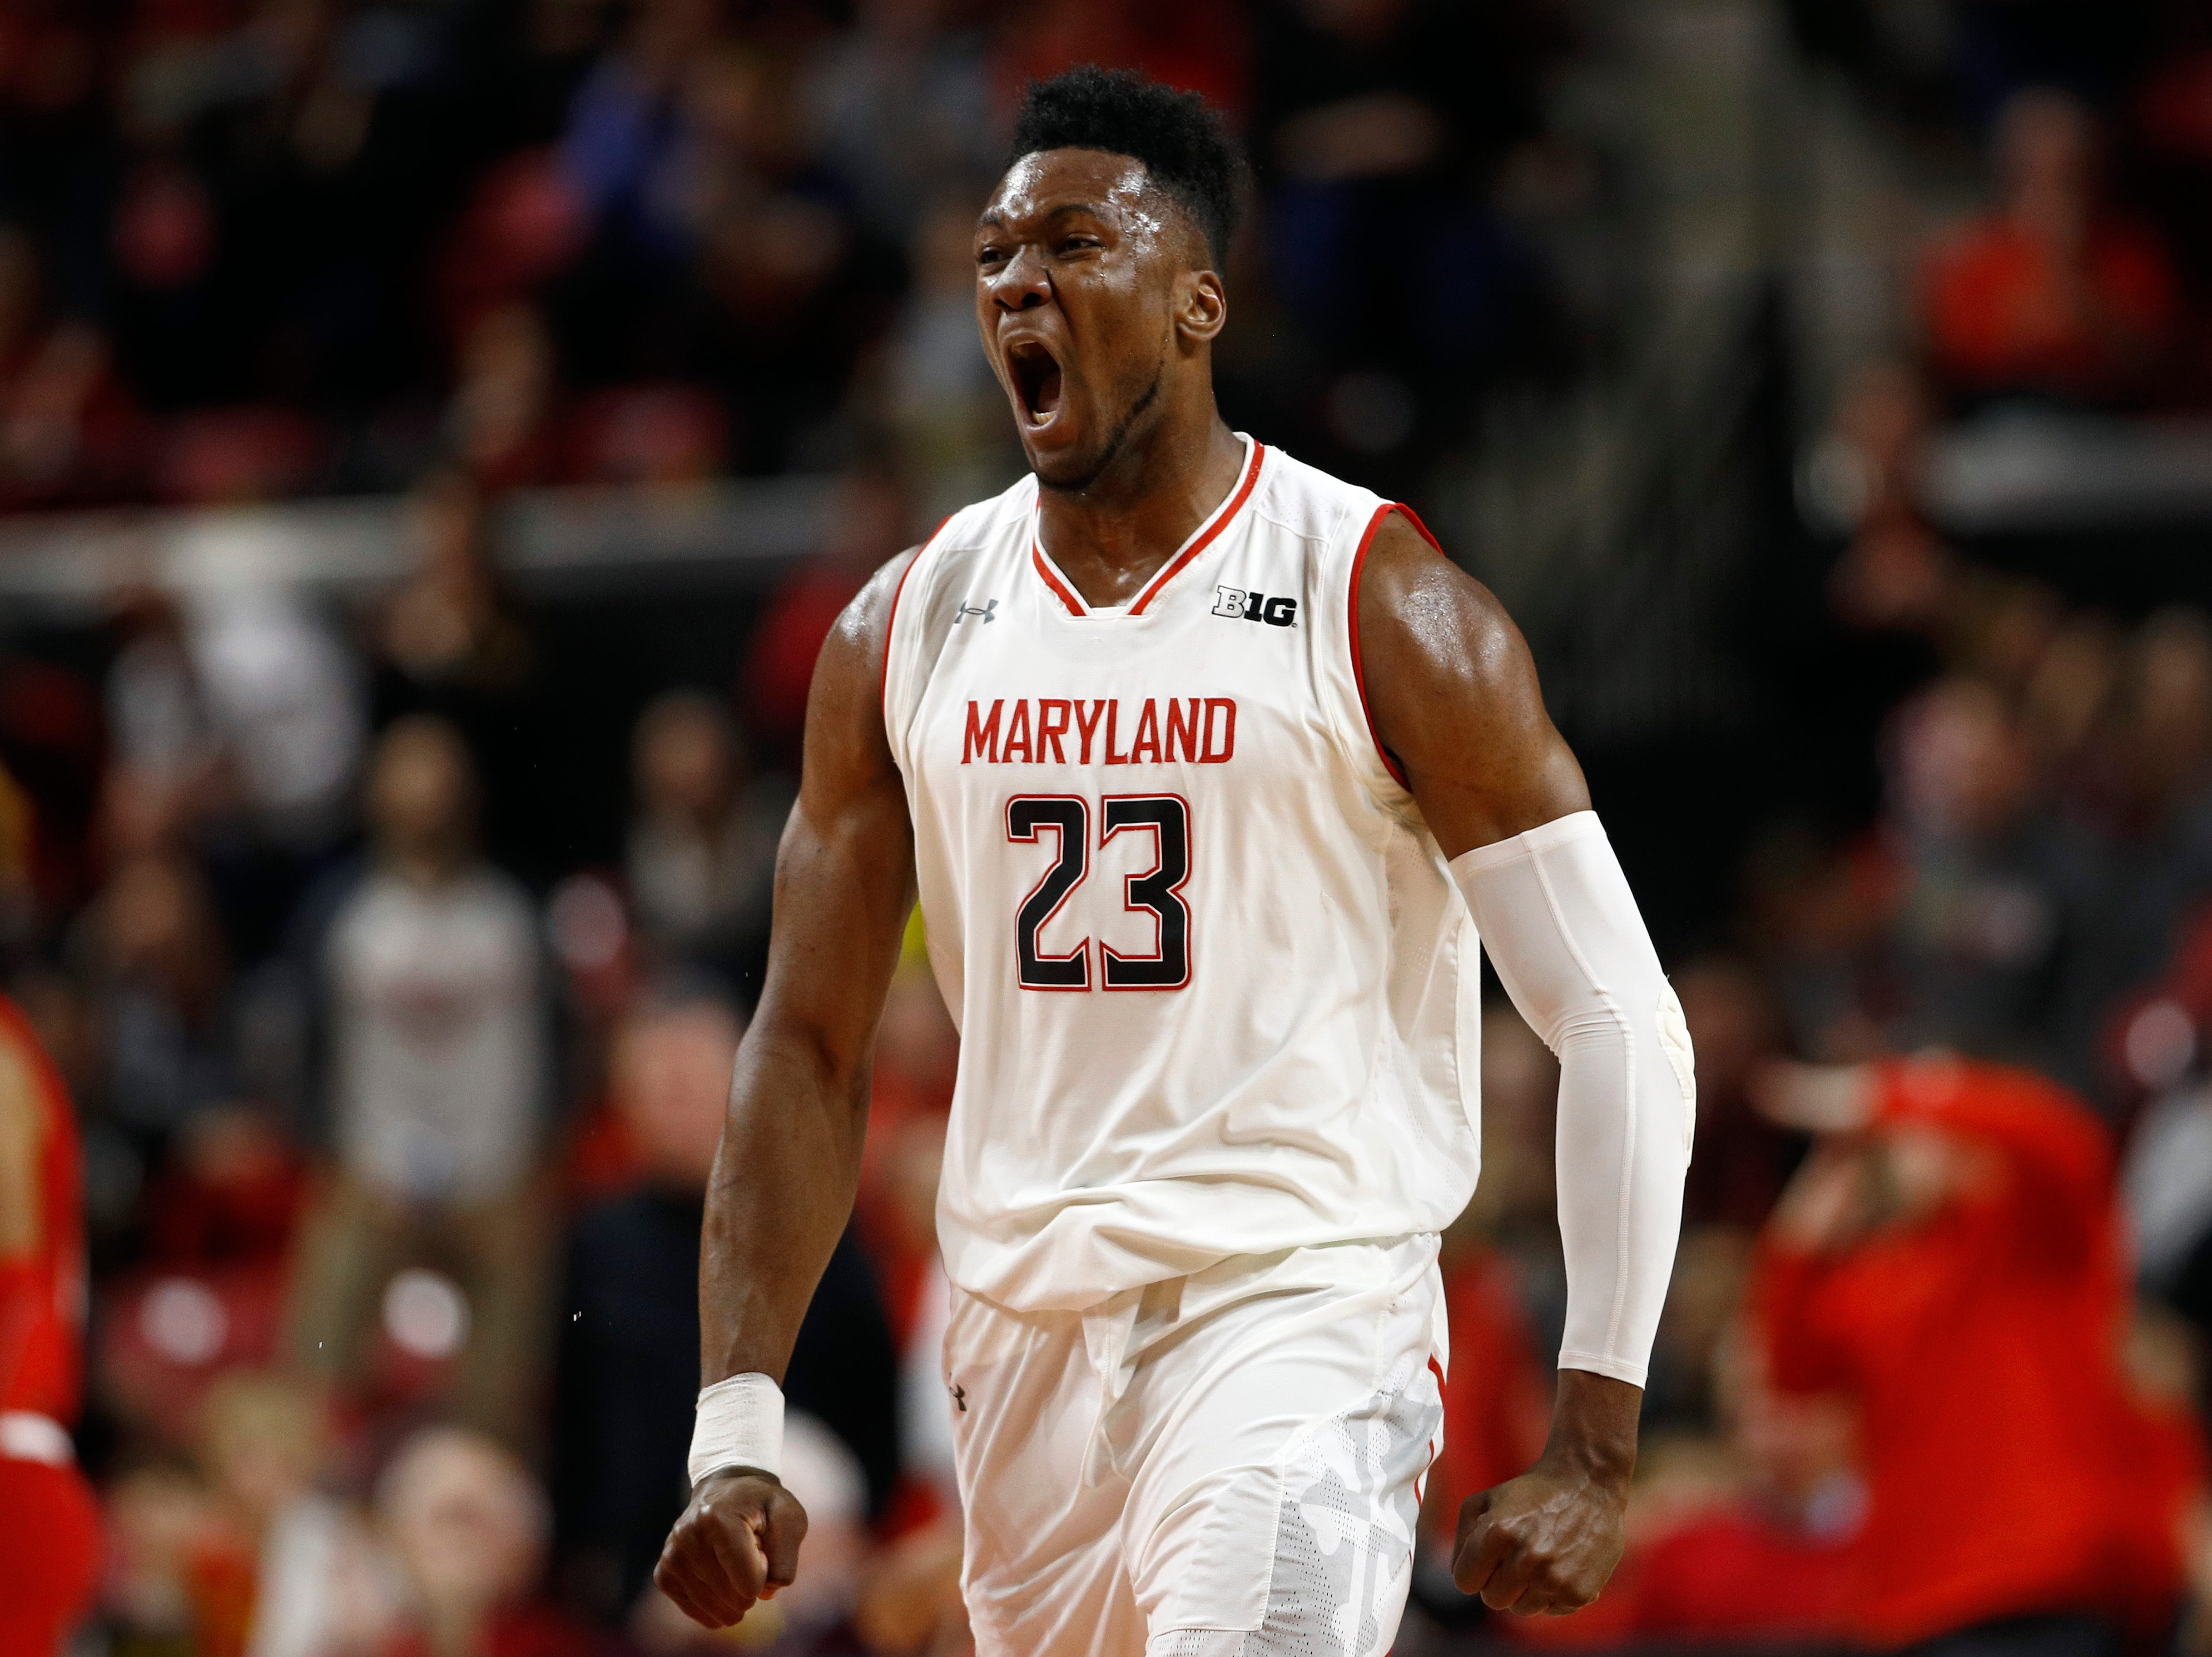 Maryland forward Bruno Fernando, of Angola, reacts in the first half of an NCAA college basketball game against Indiana, Friday, Jan. 11, 2019, in College Park, Md. (AP Photo/Patrick Semansky)